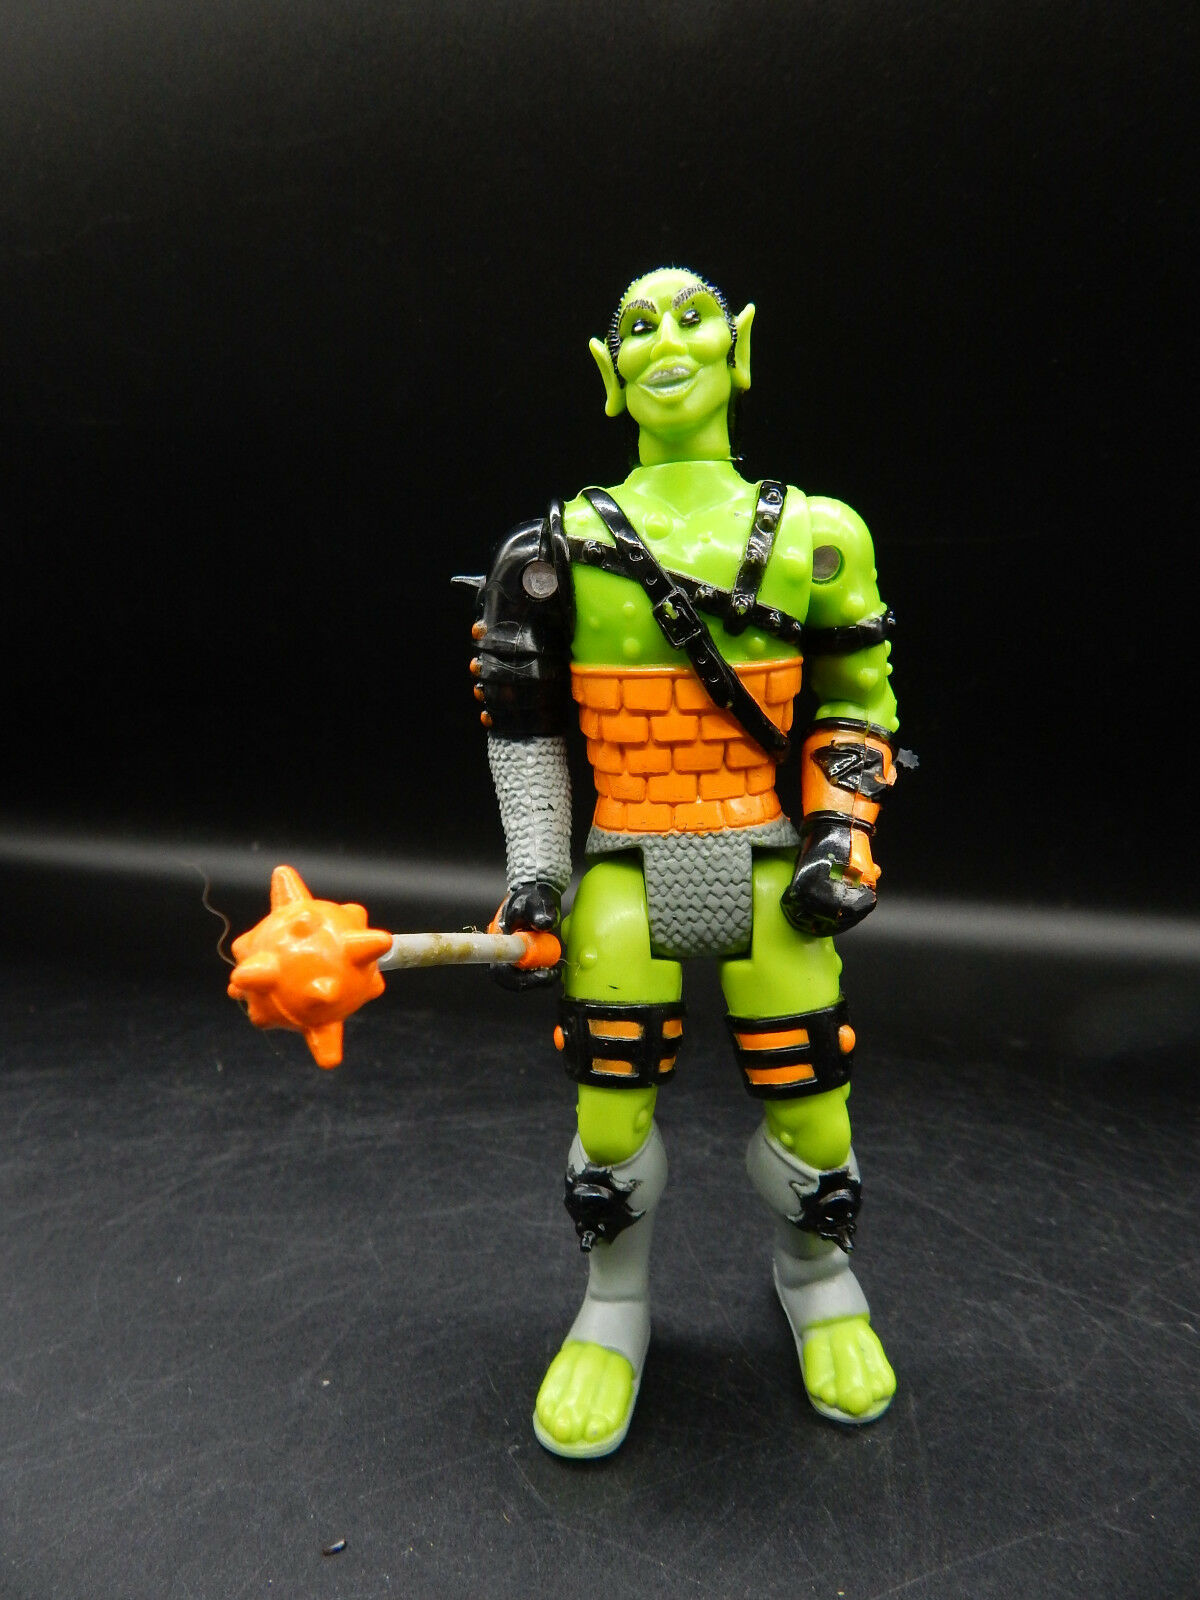 Vintage shield shooter OGRE KING Advanced Dungeons & Dragons LJN action figure